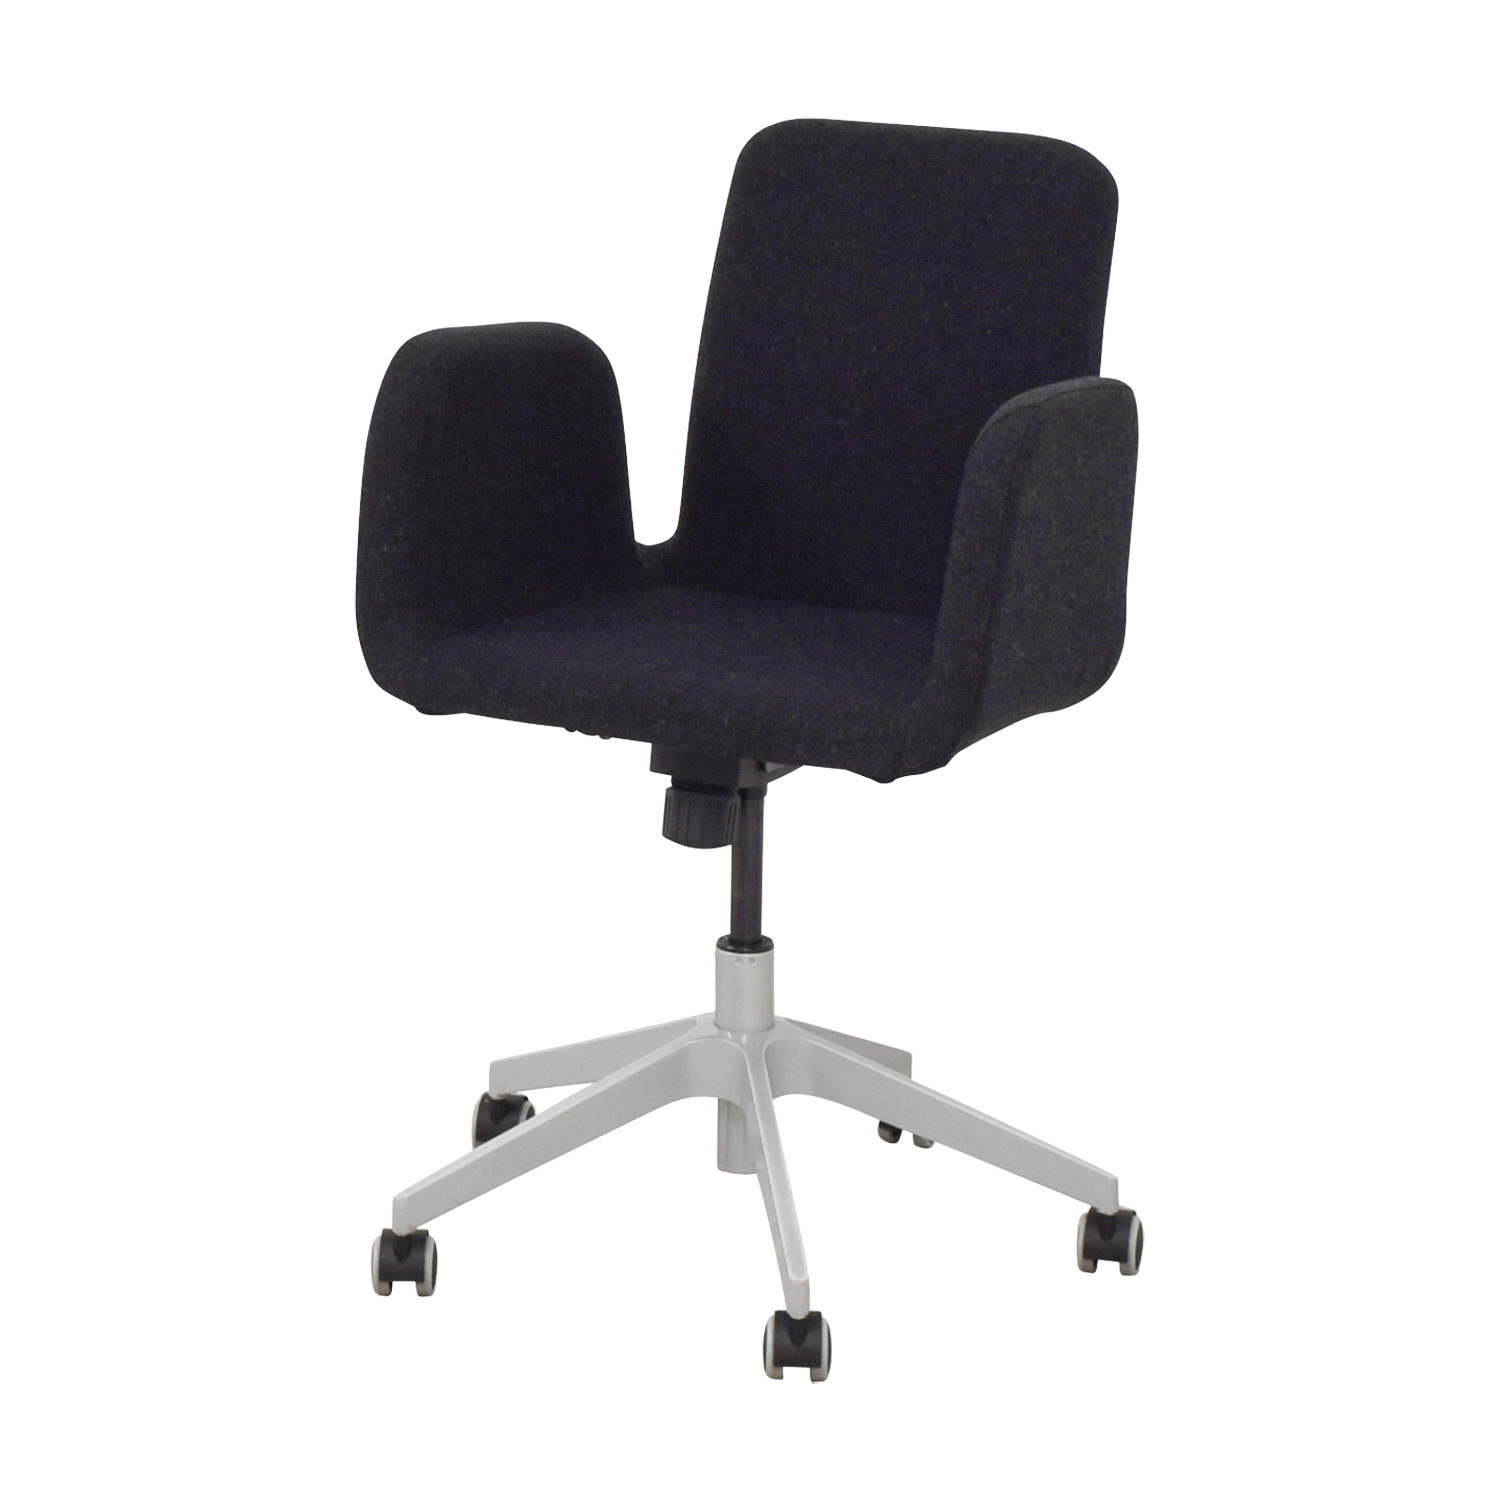 Attrayant ... IKEA IKEA Black Desk Chair Price ...